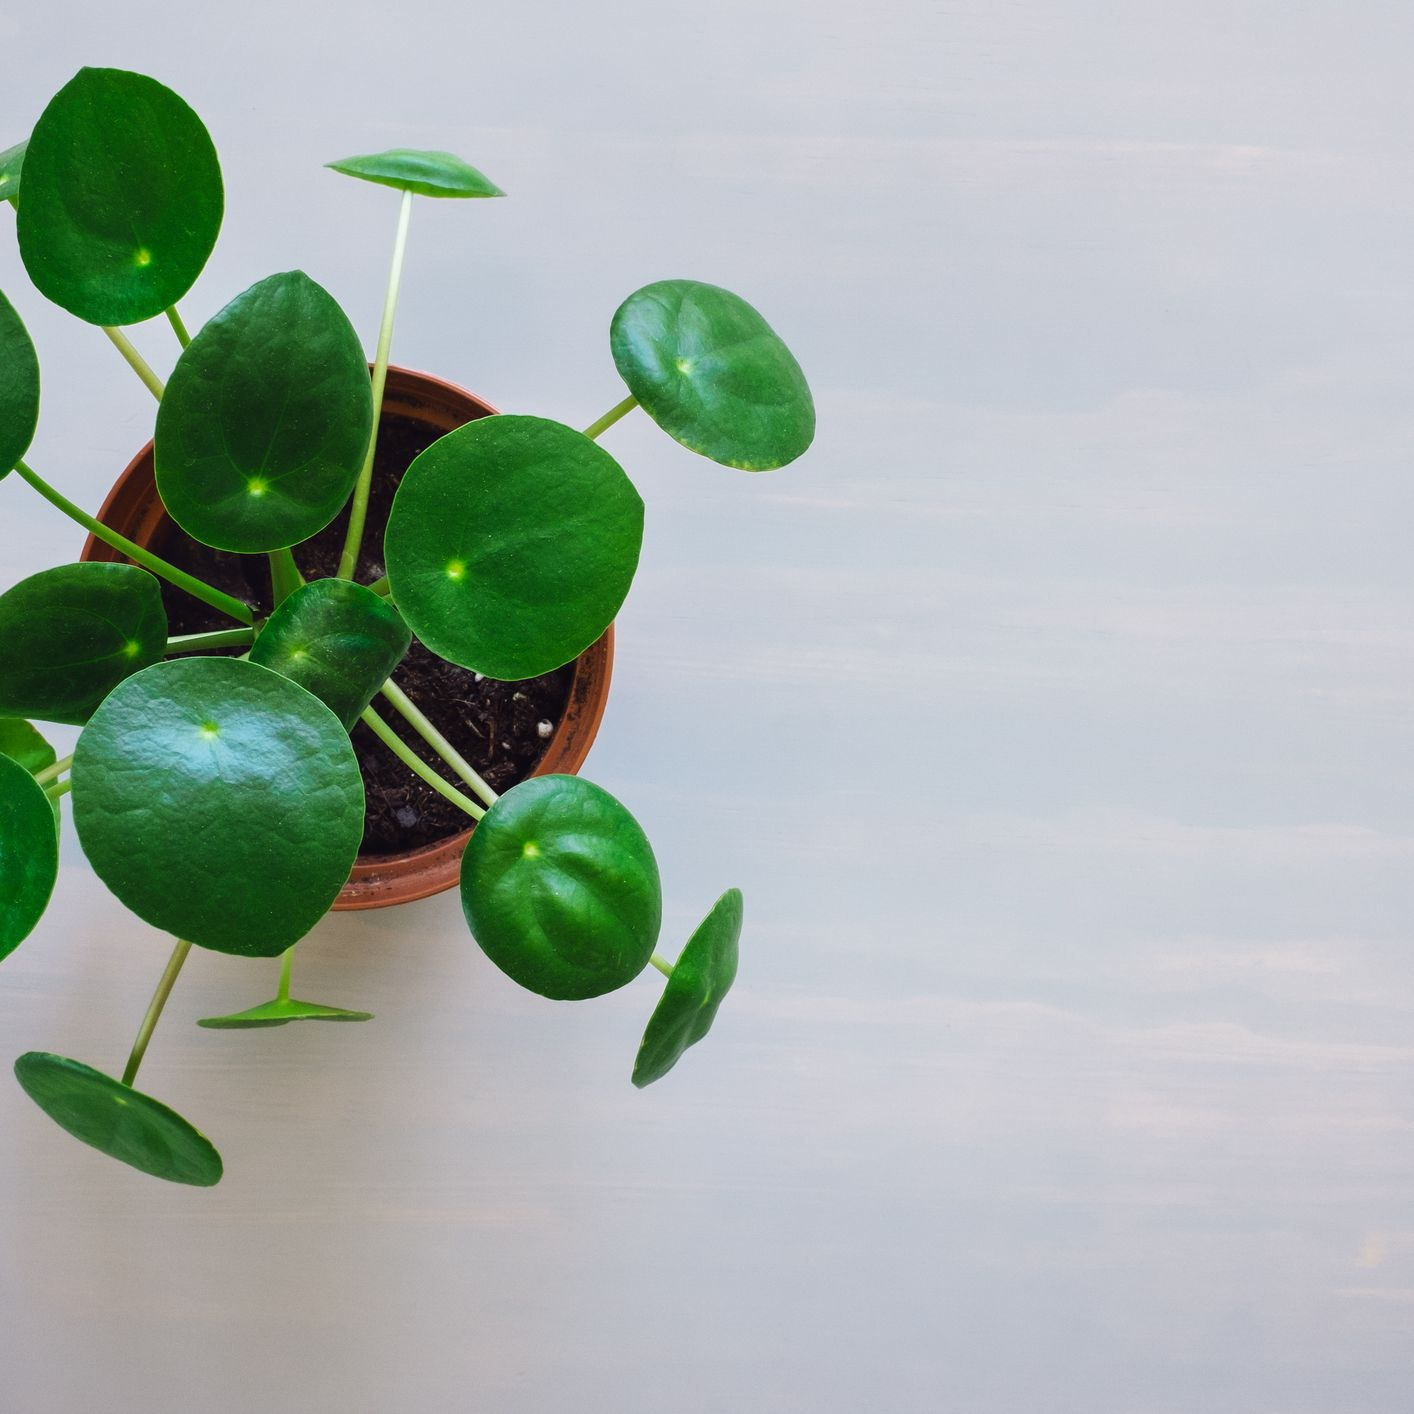 Everything You Need to Know About Pilea Peperomioides